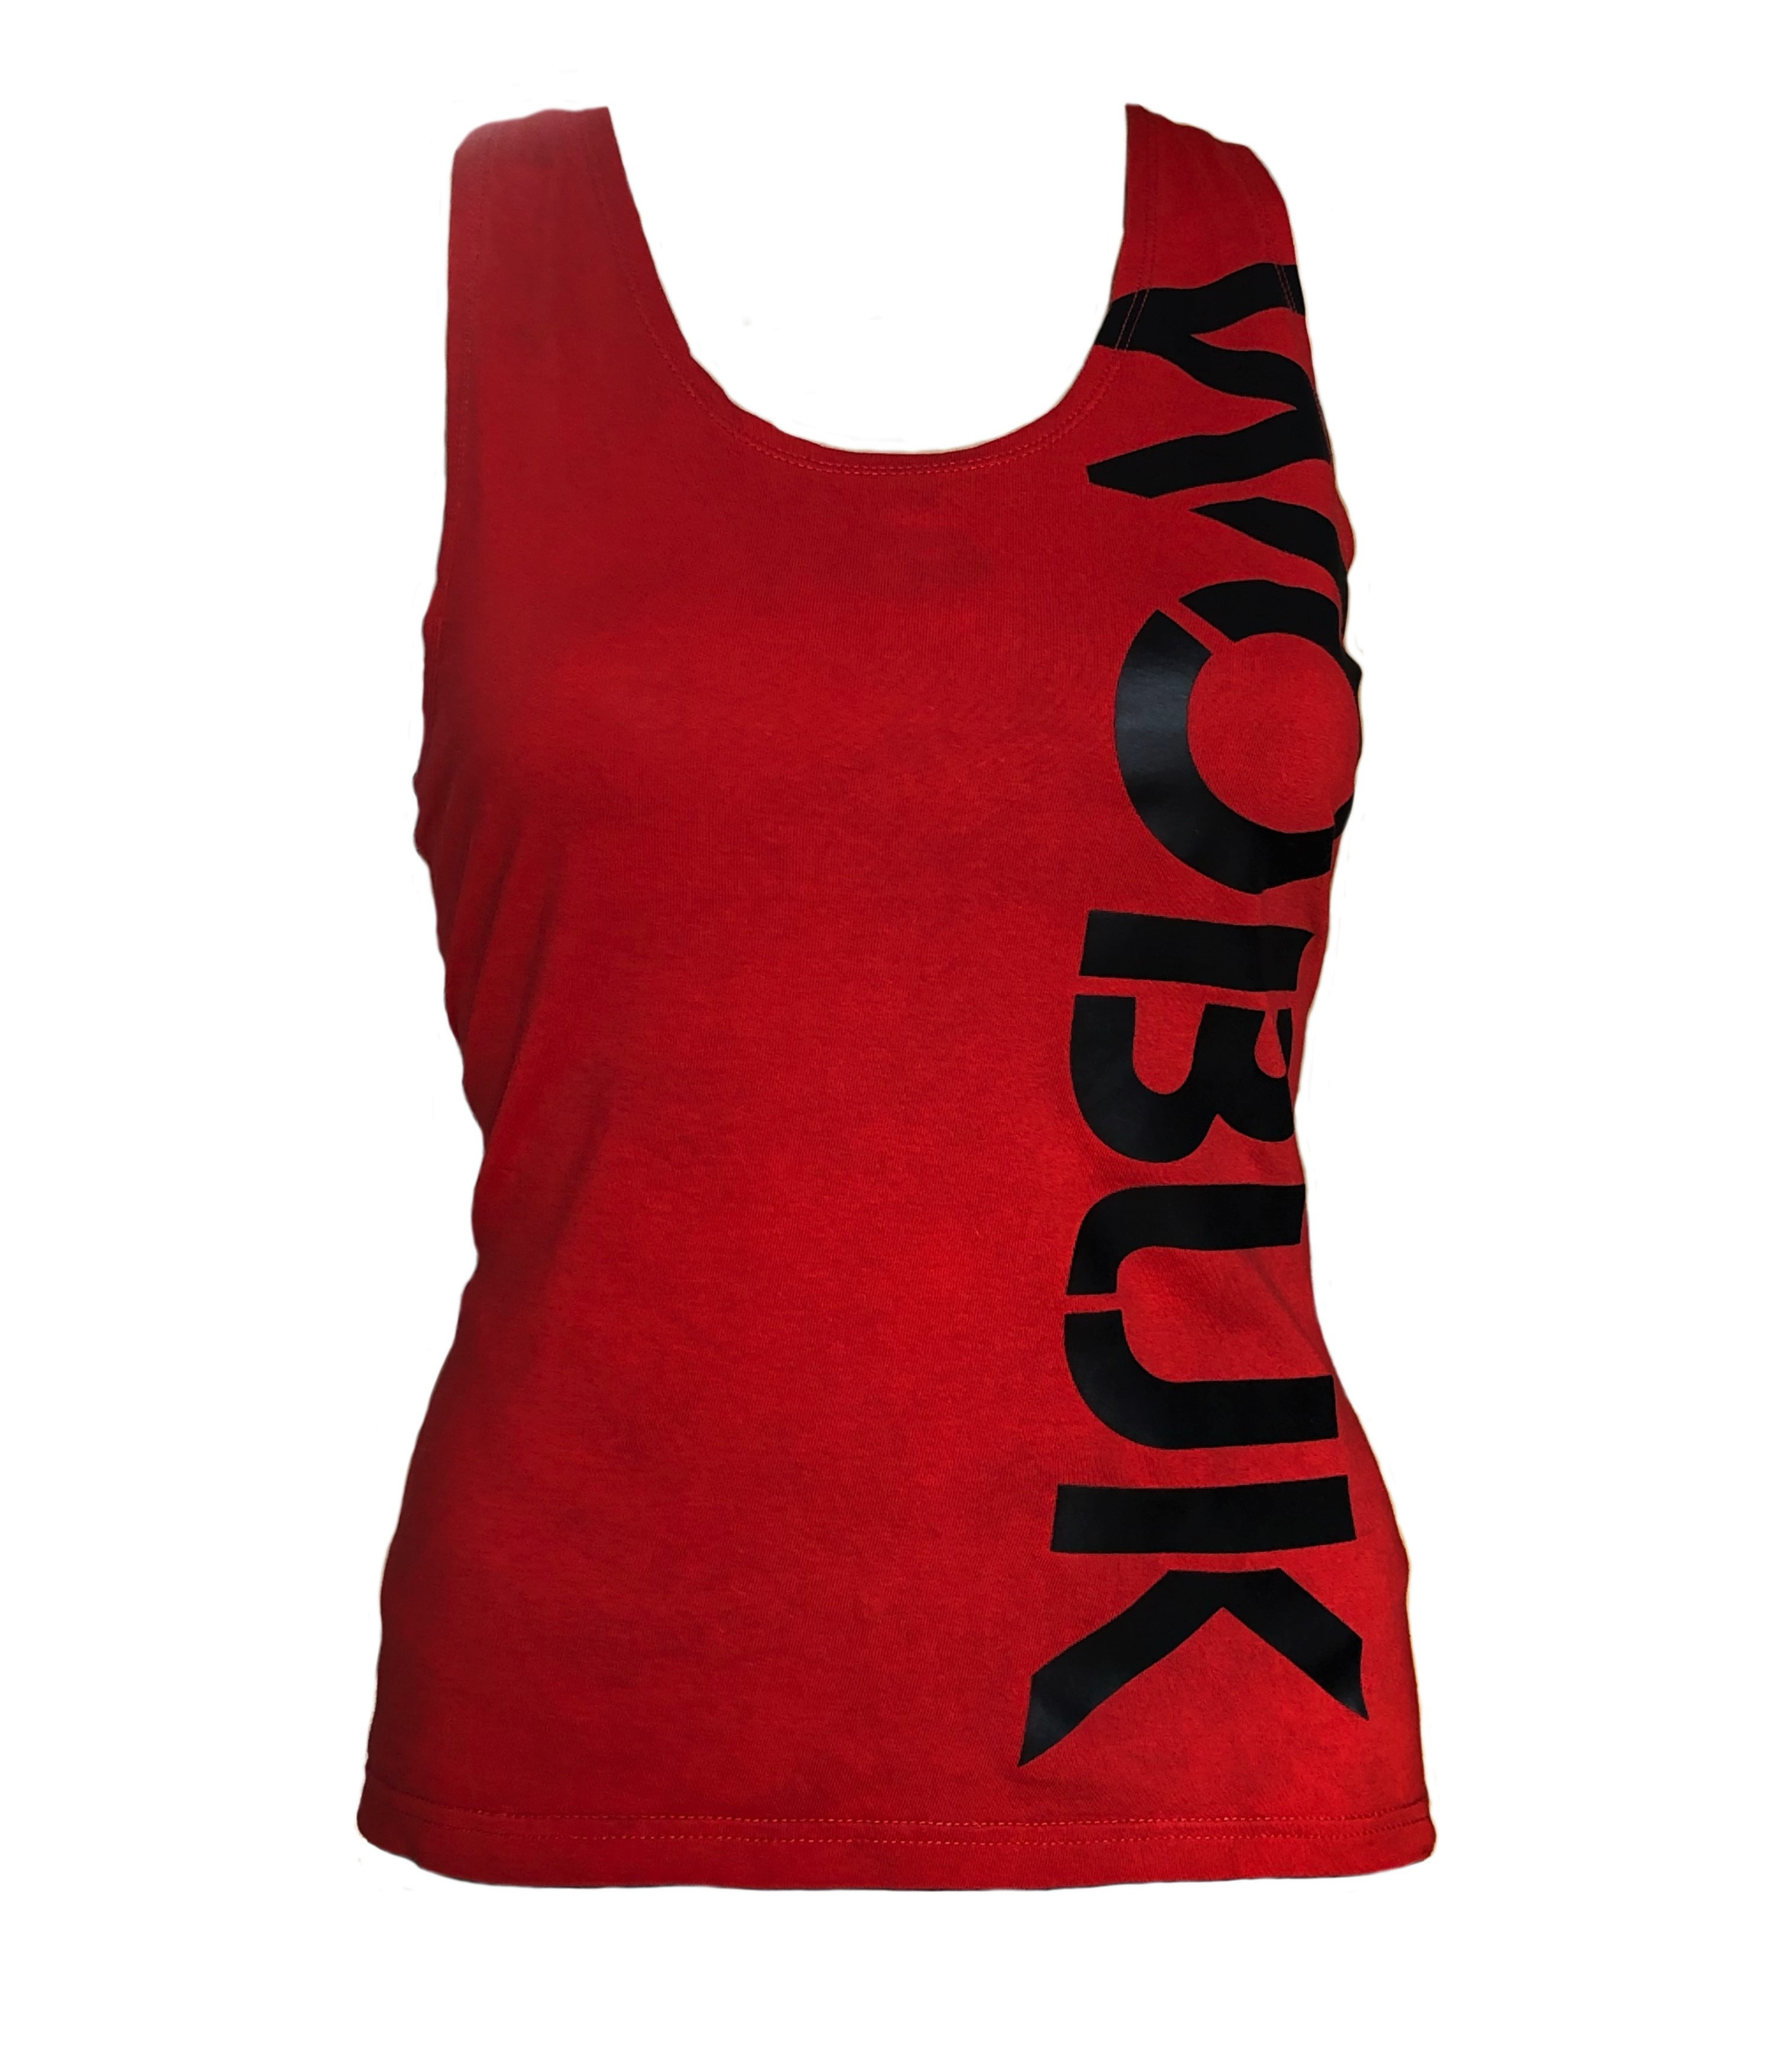 Womens Racer back Fitted Vest top